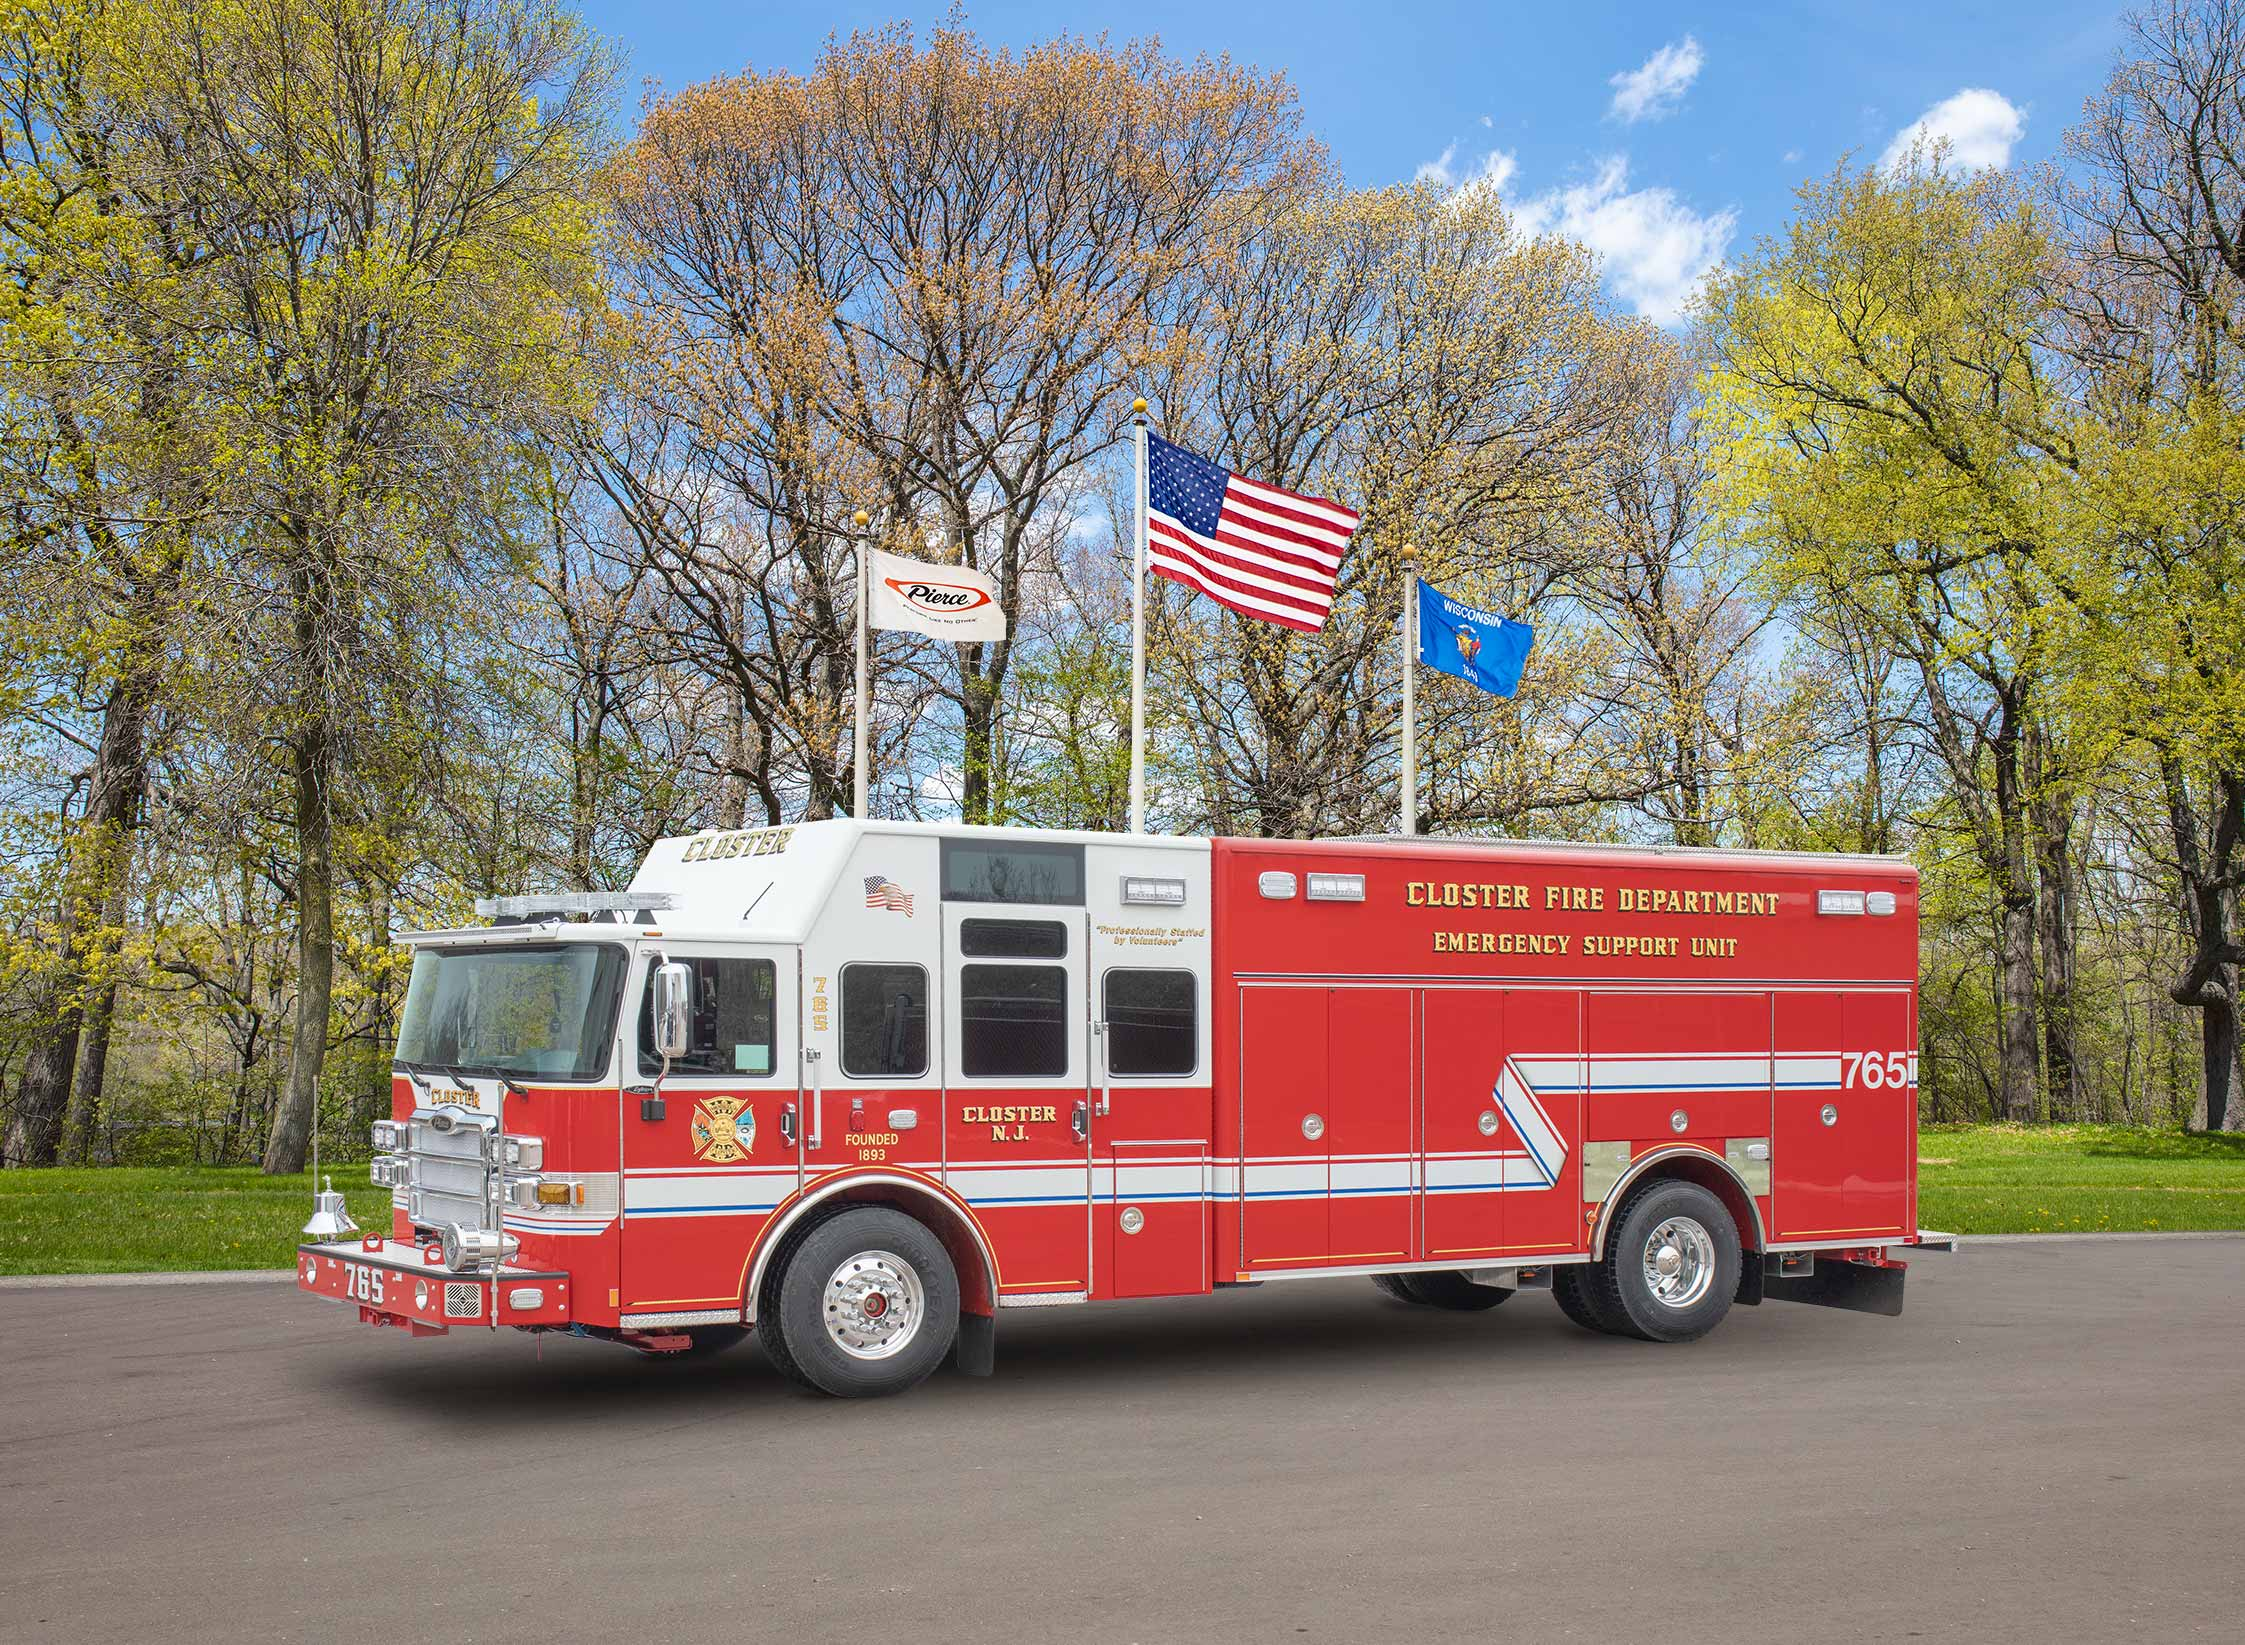 Closter Fire Department - Rescue